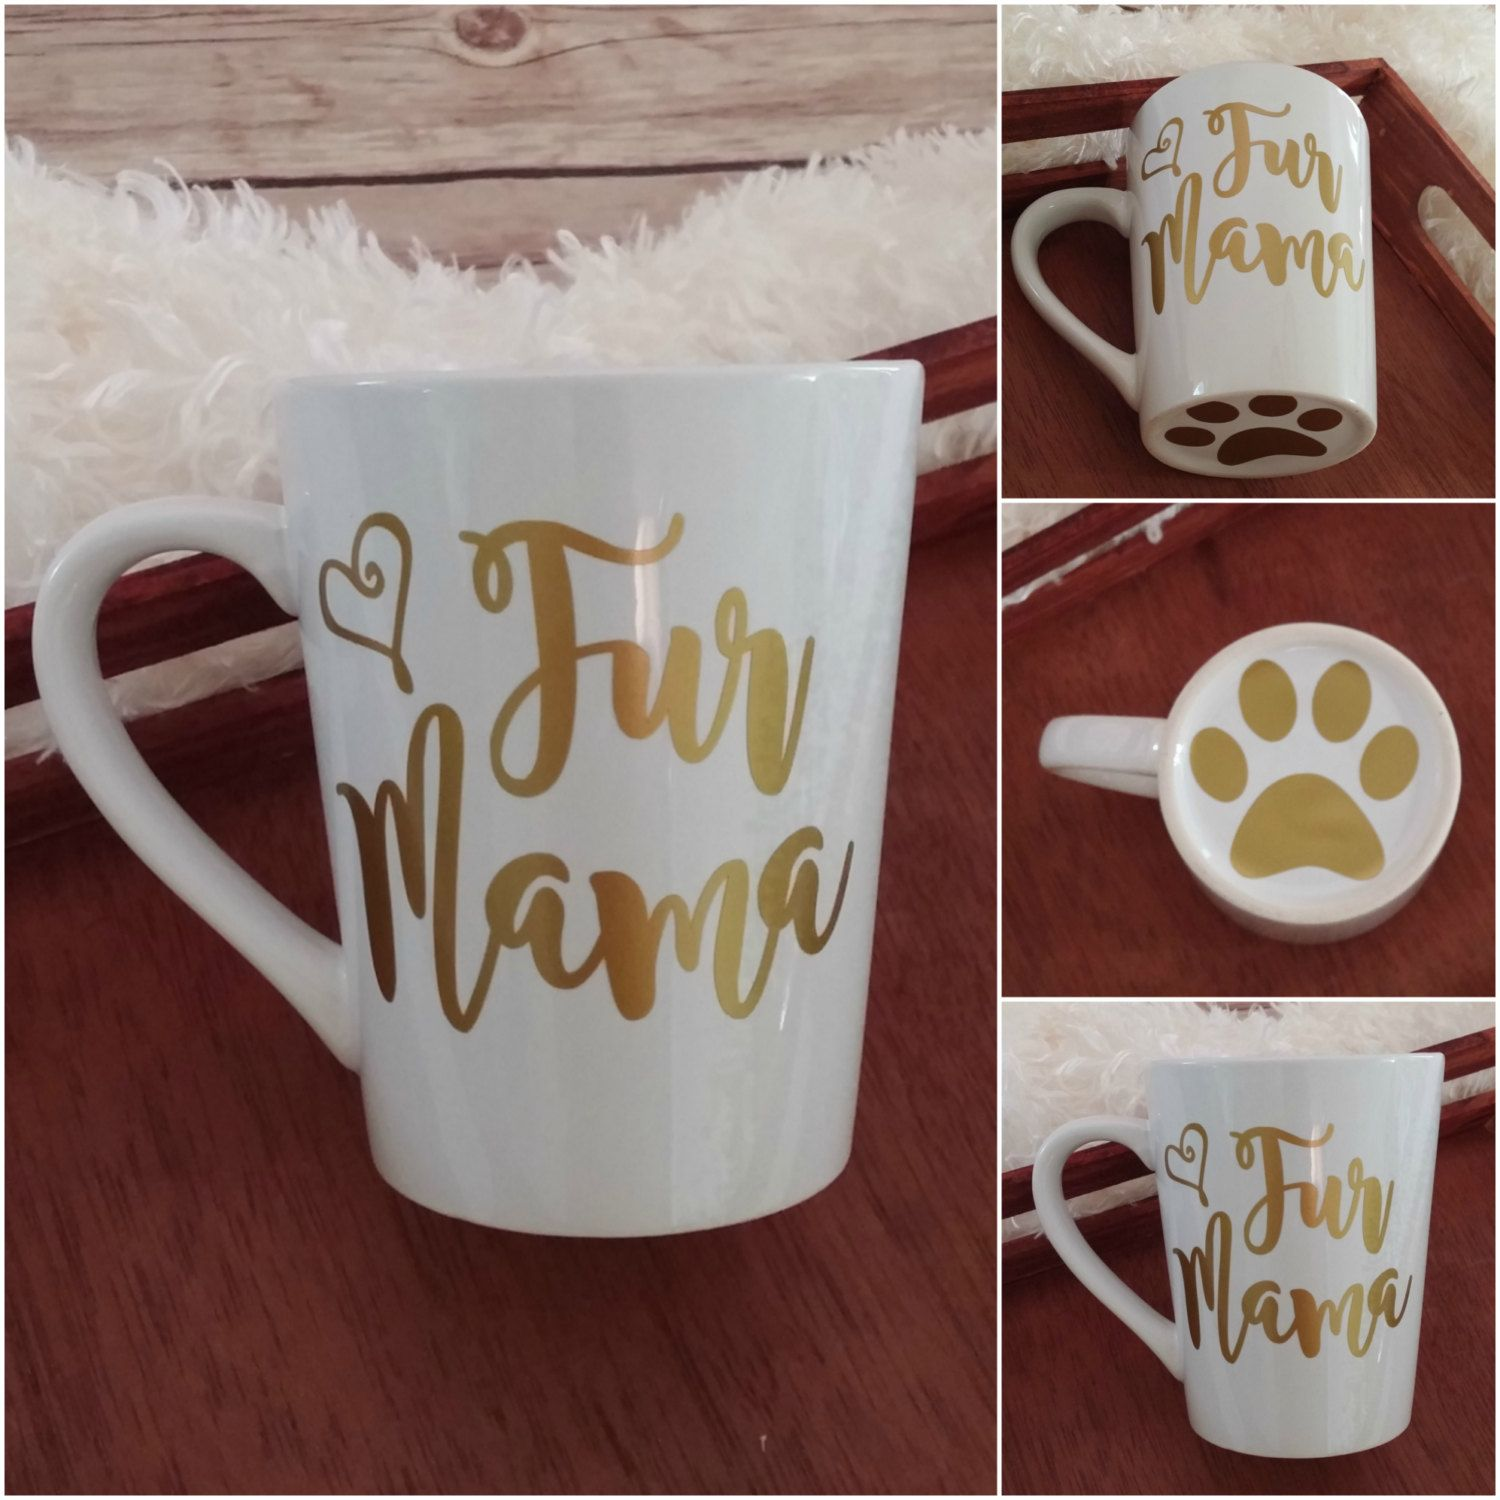 e231ad6cd Pin by KC Williams on I want you to Mug me! | Dog mom gifts, Dog dad ...